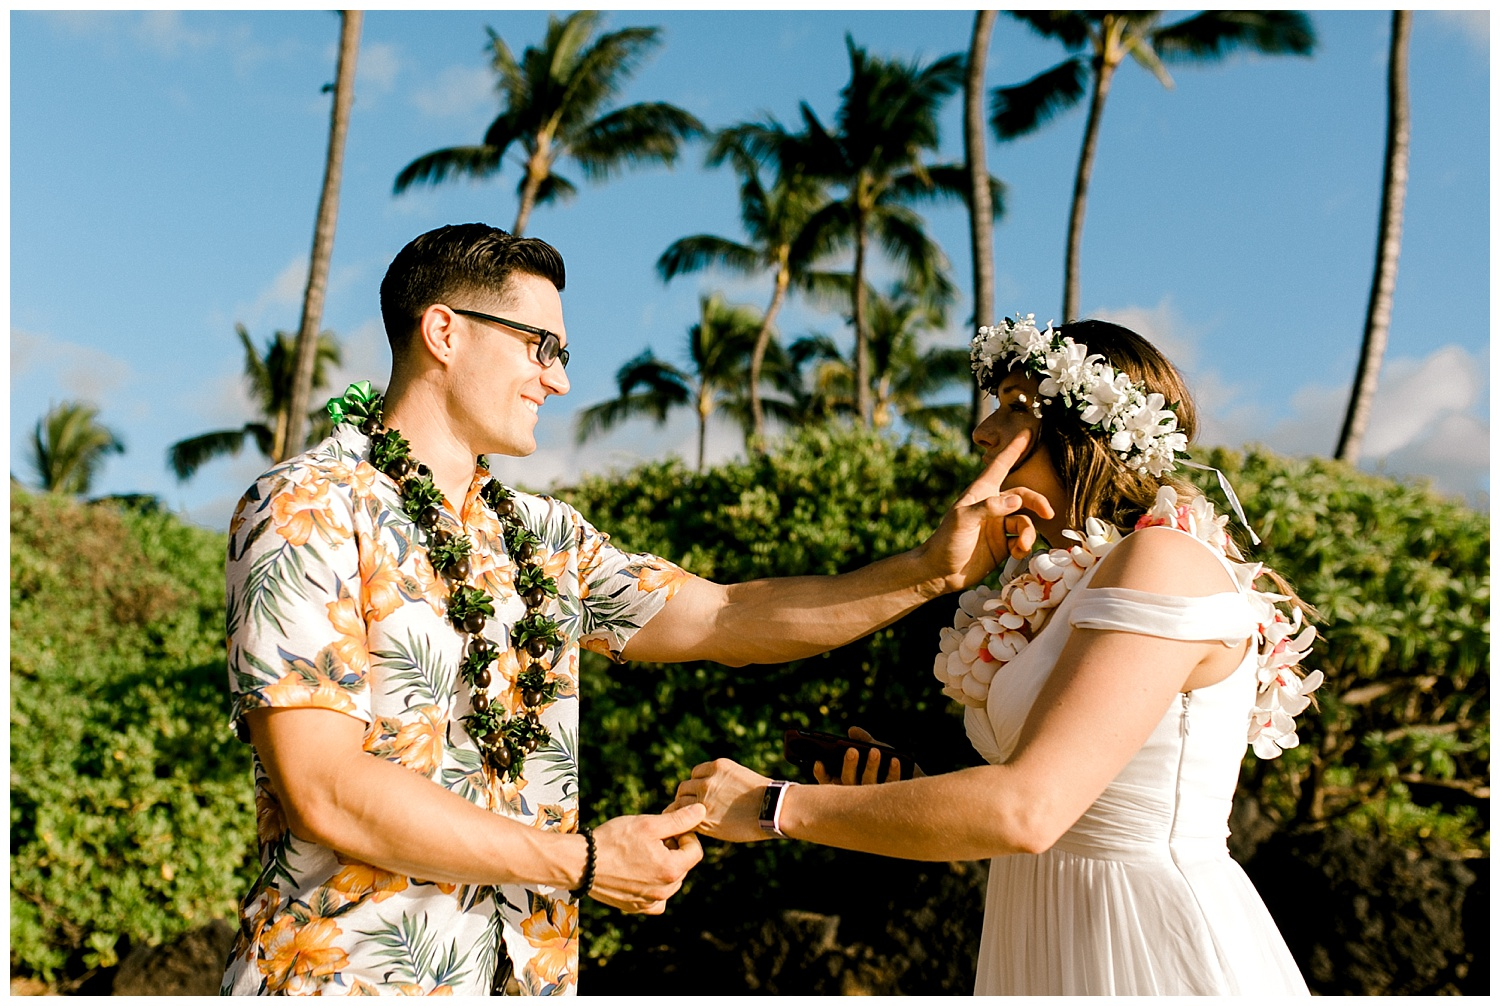 Maui-Elopement-Photography-Paipu-Beach-Maui_0001.jpg